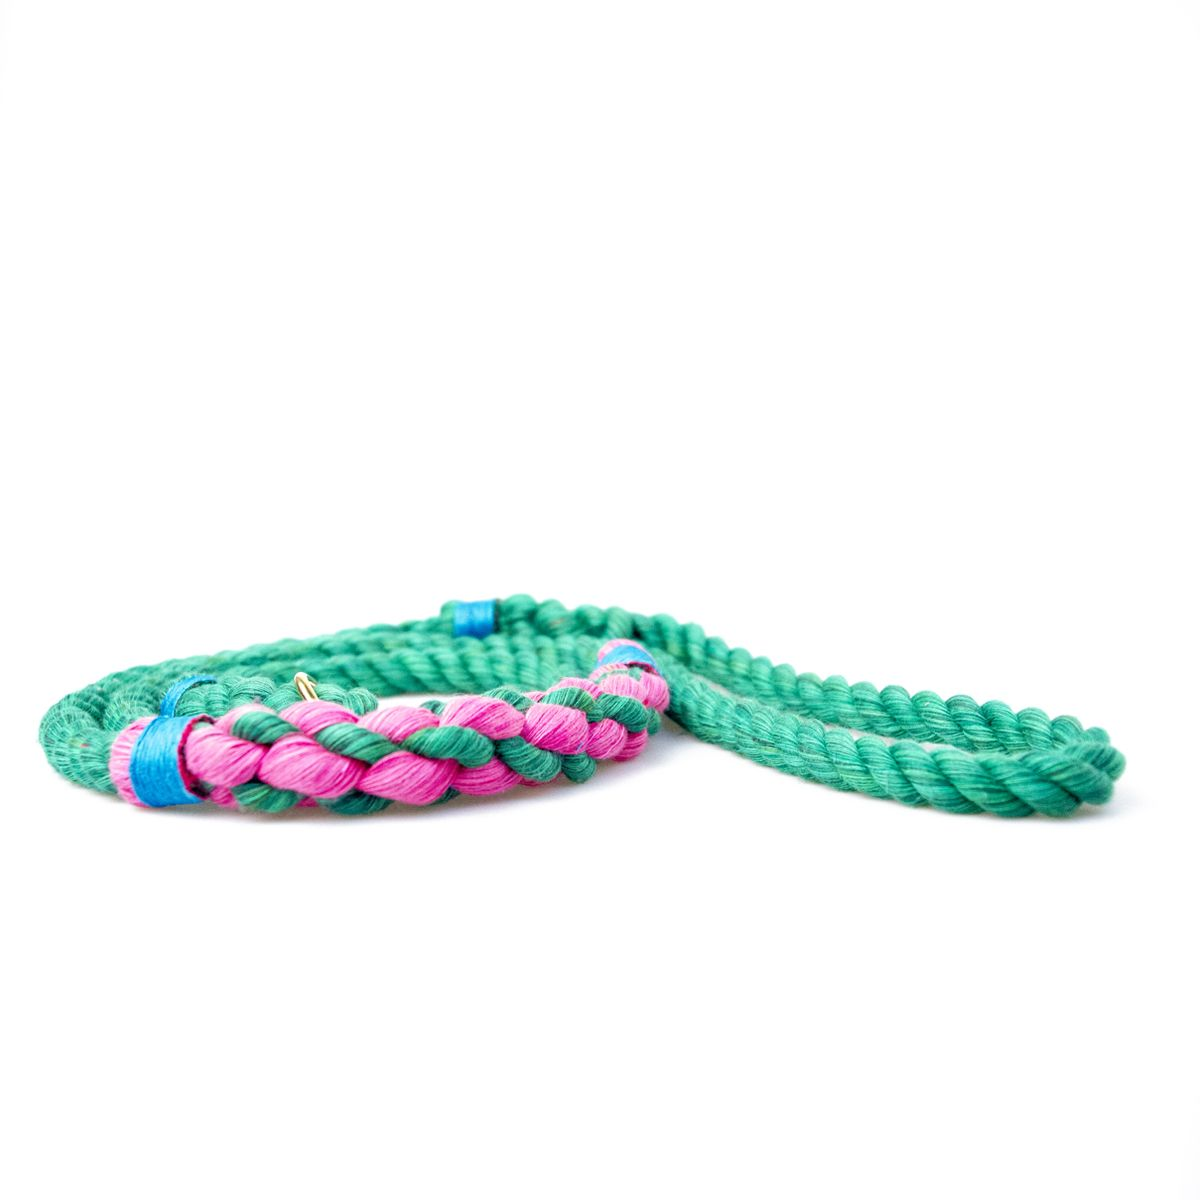 Green & Pink with sky blue accent